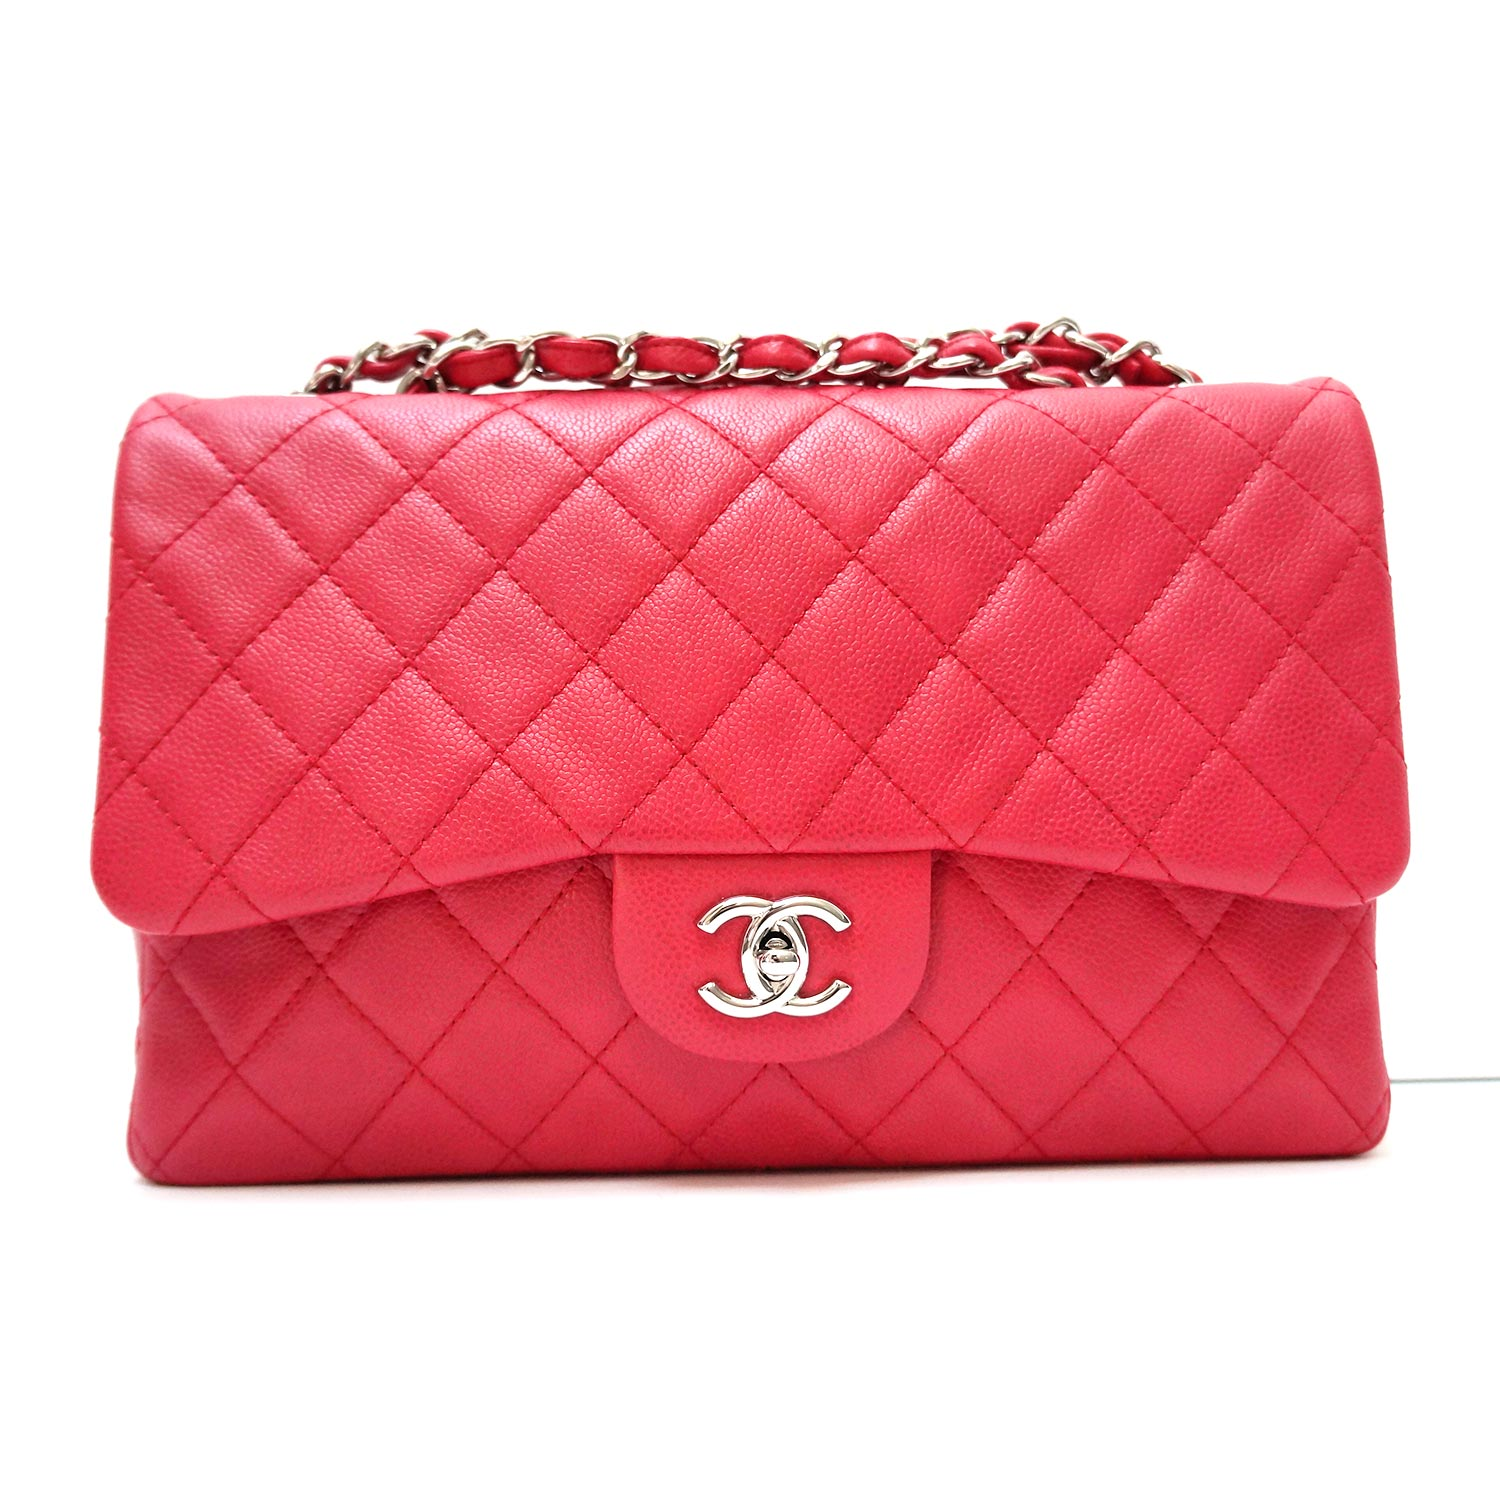 c00ed576dece Chanel Raspberry Red Washed Caviar Leather Classic Jumbo Single Flap ...